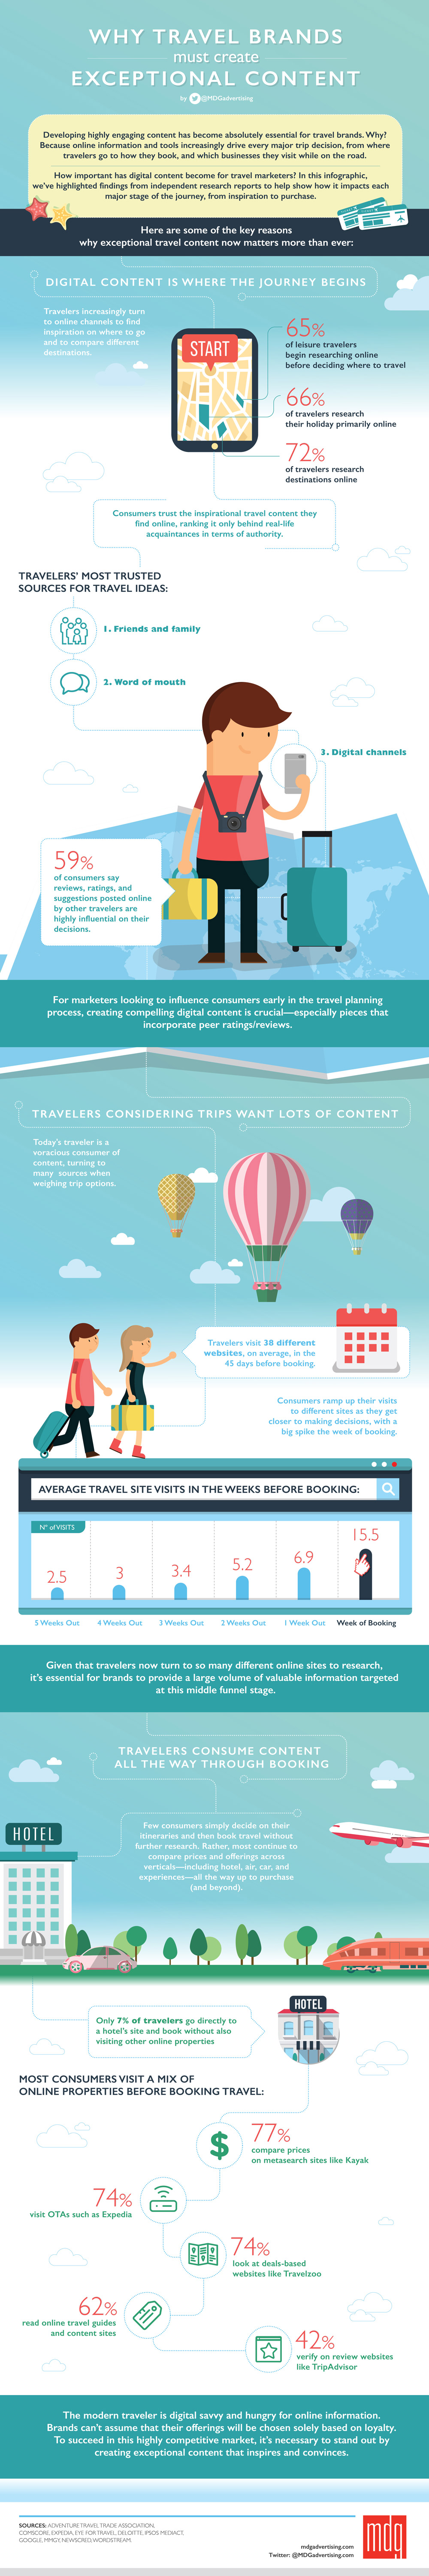 Why Travel Brands Must Create Exceptional Content [Infographic]